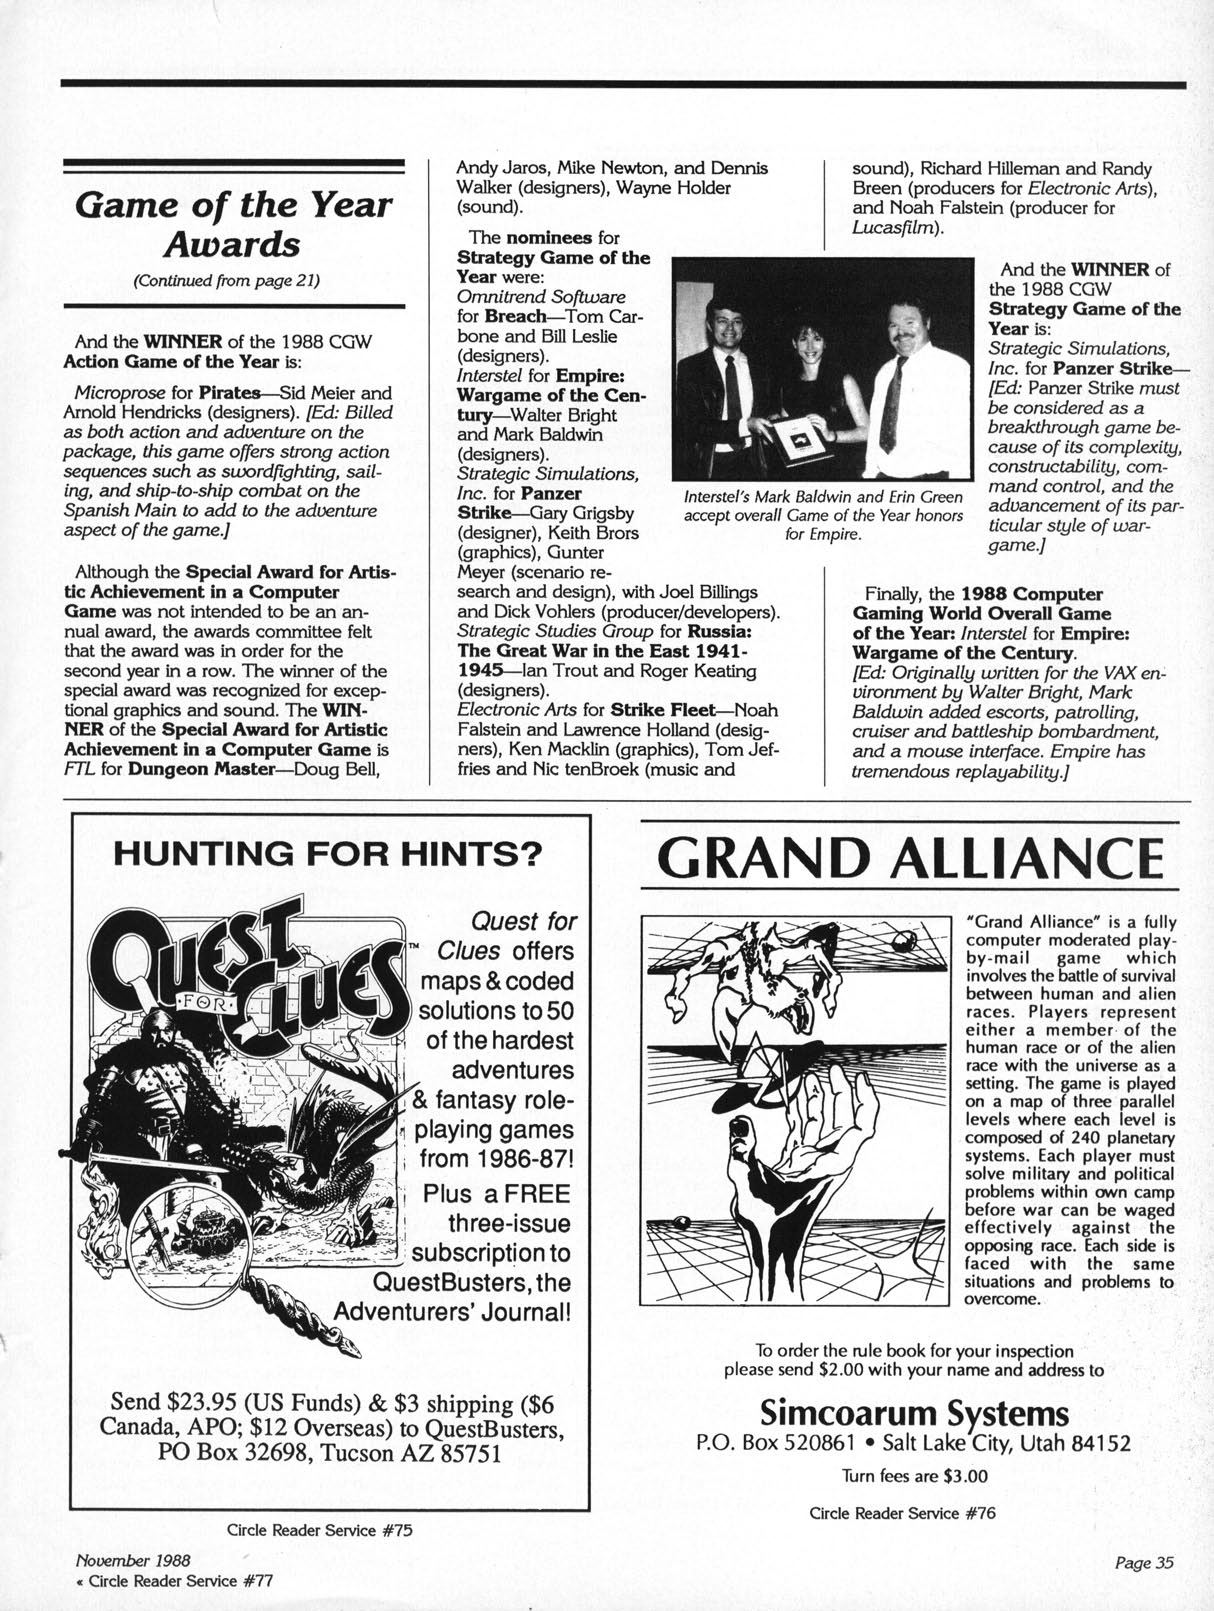 Dungeon Master Article published in American magazine 'Computer Gaming World', Issue #53 November 1988, Page 35